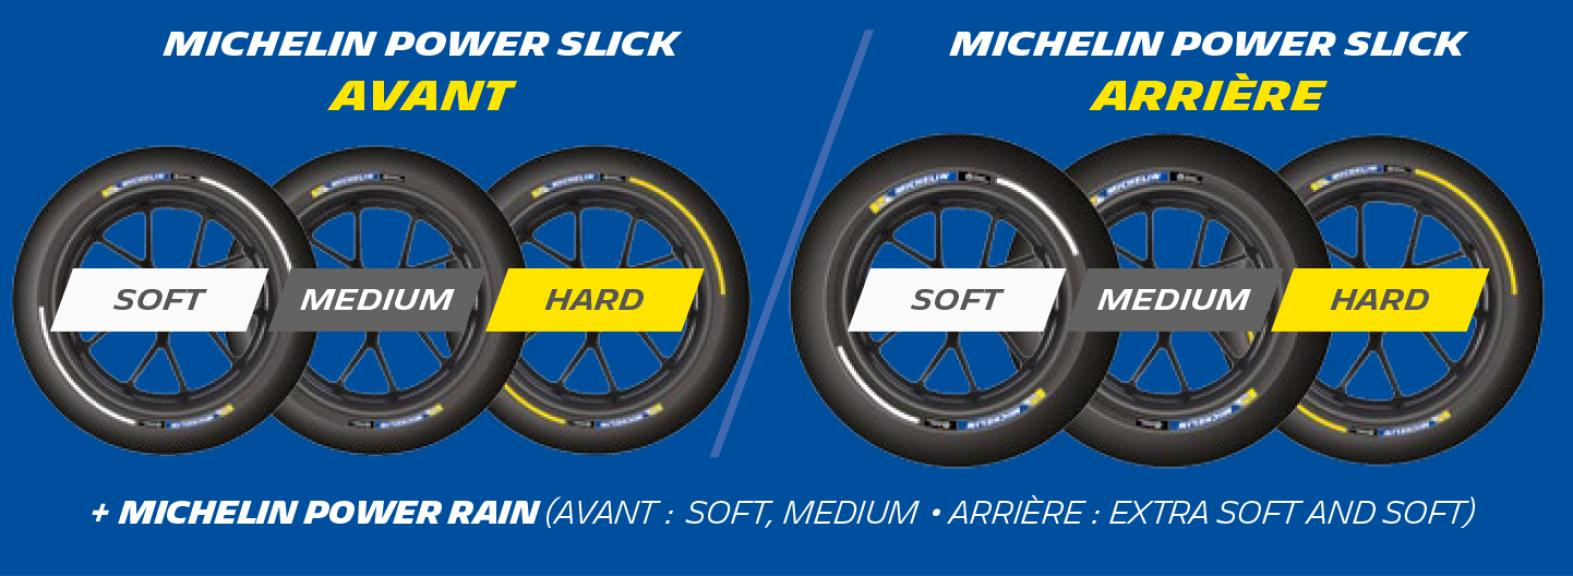 Michelin_French_Japan